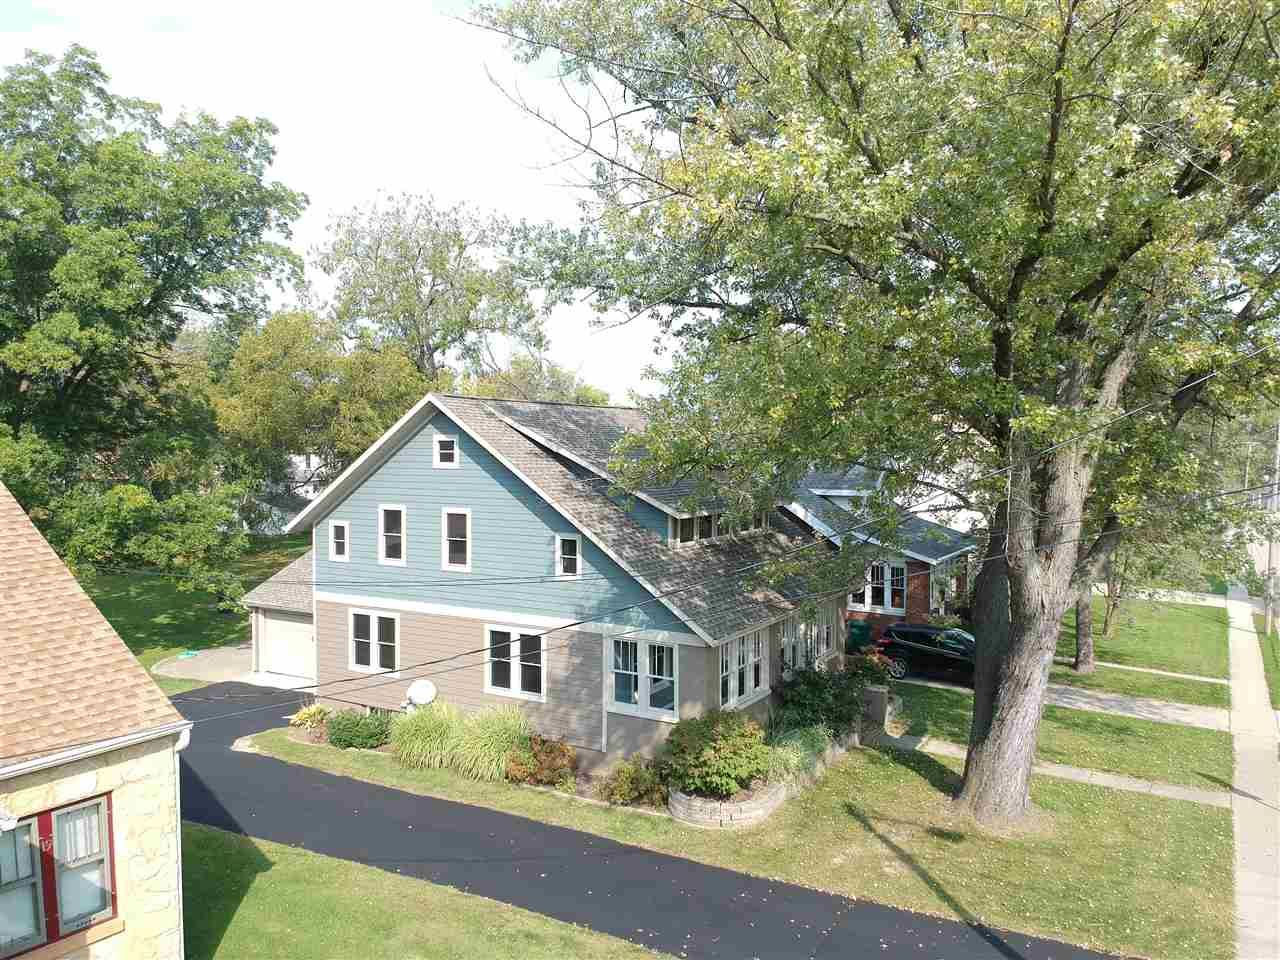 f_1894544_01 Our Listings at Best Realty of Edgerton